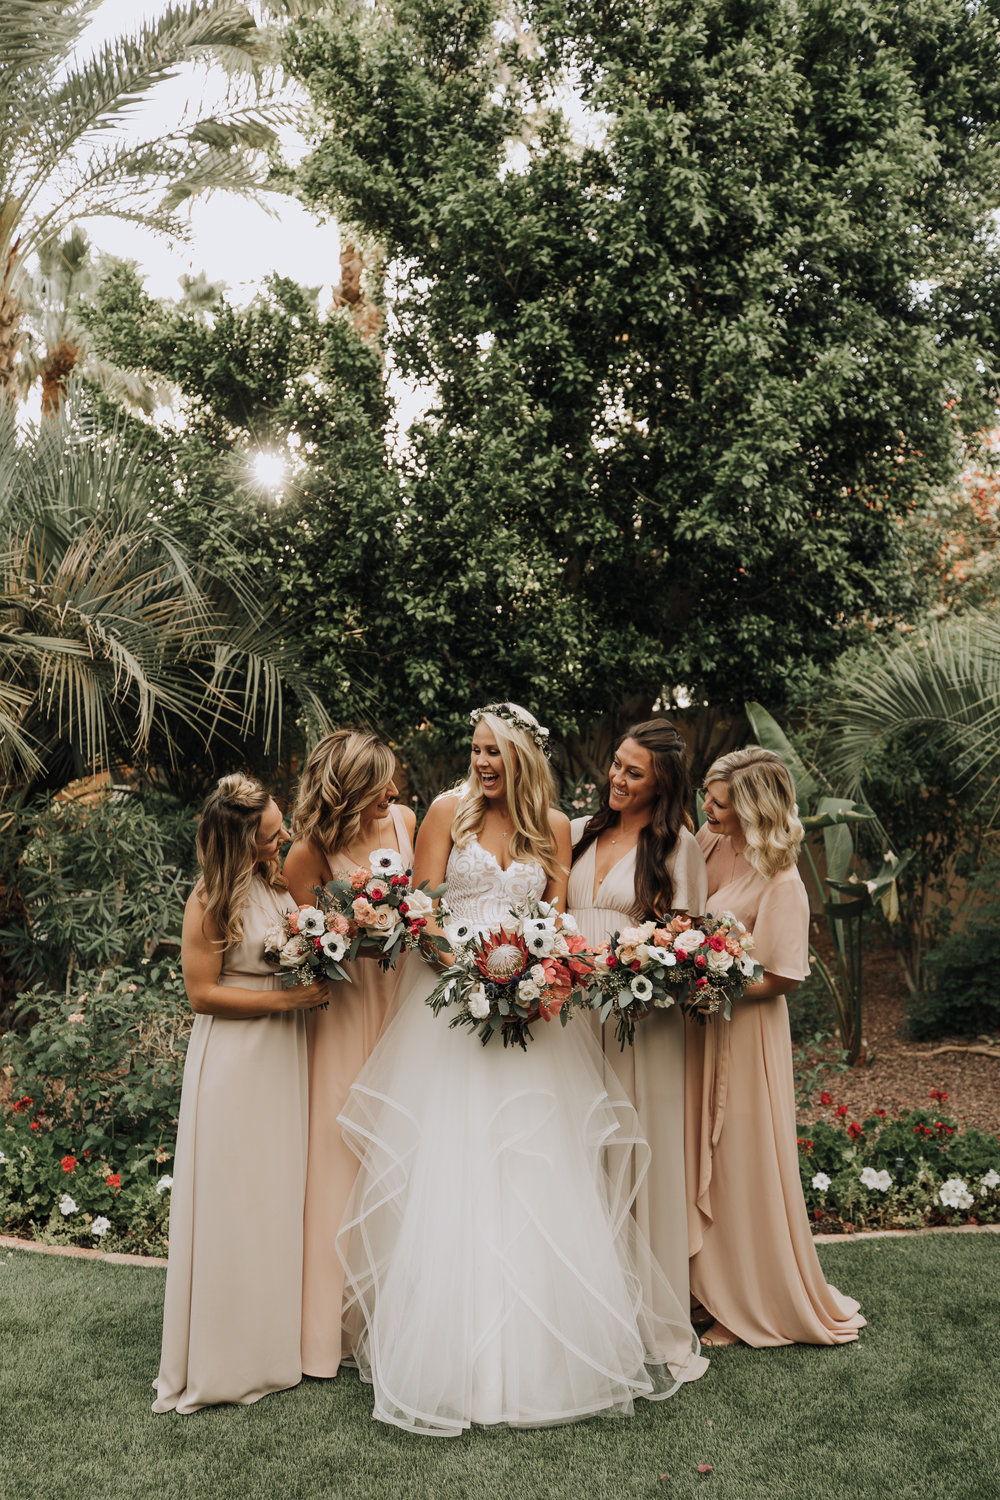 Bridal Party in Nude Gowns with Pink, Blush, and White bouquets